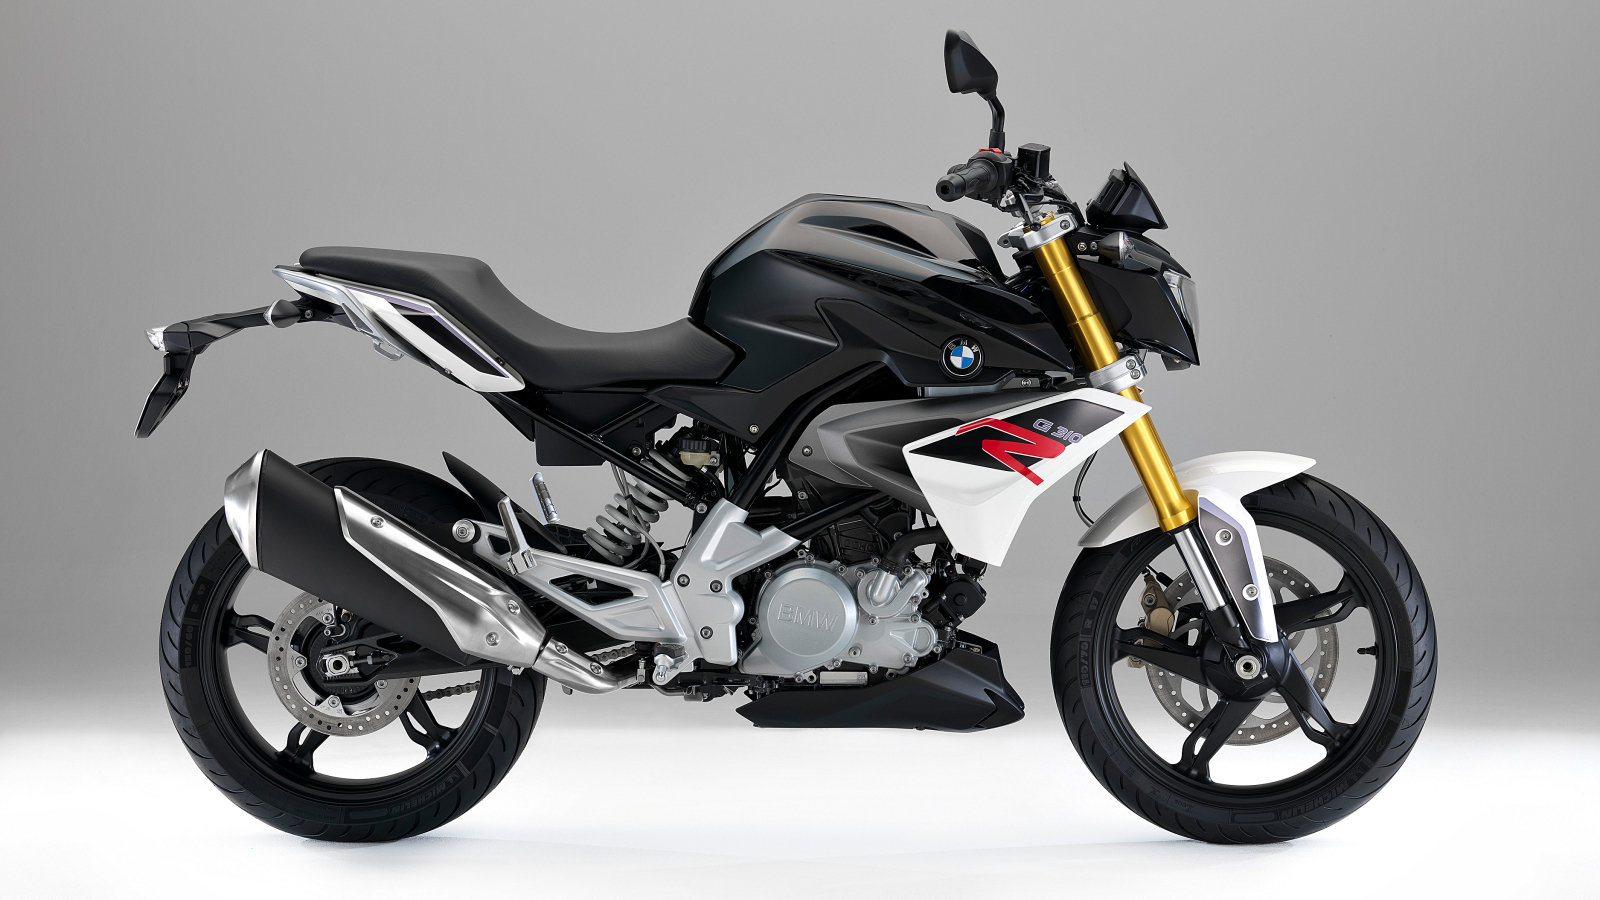 2016 bmw g 310 r picture 684732 motorcycle review. Black Bedroom Furniture Sets. Home Design Ideas